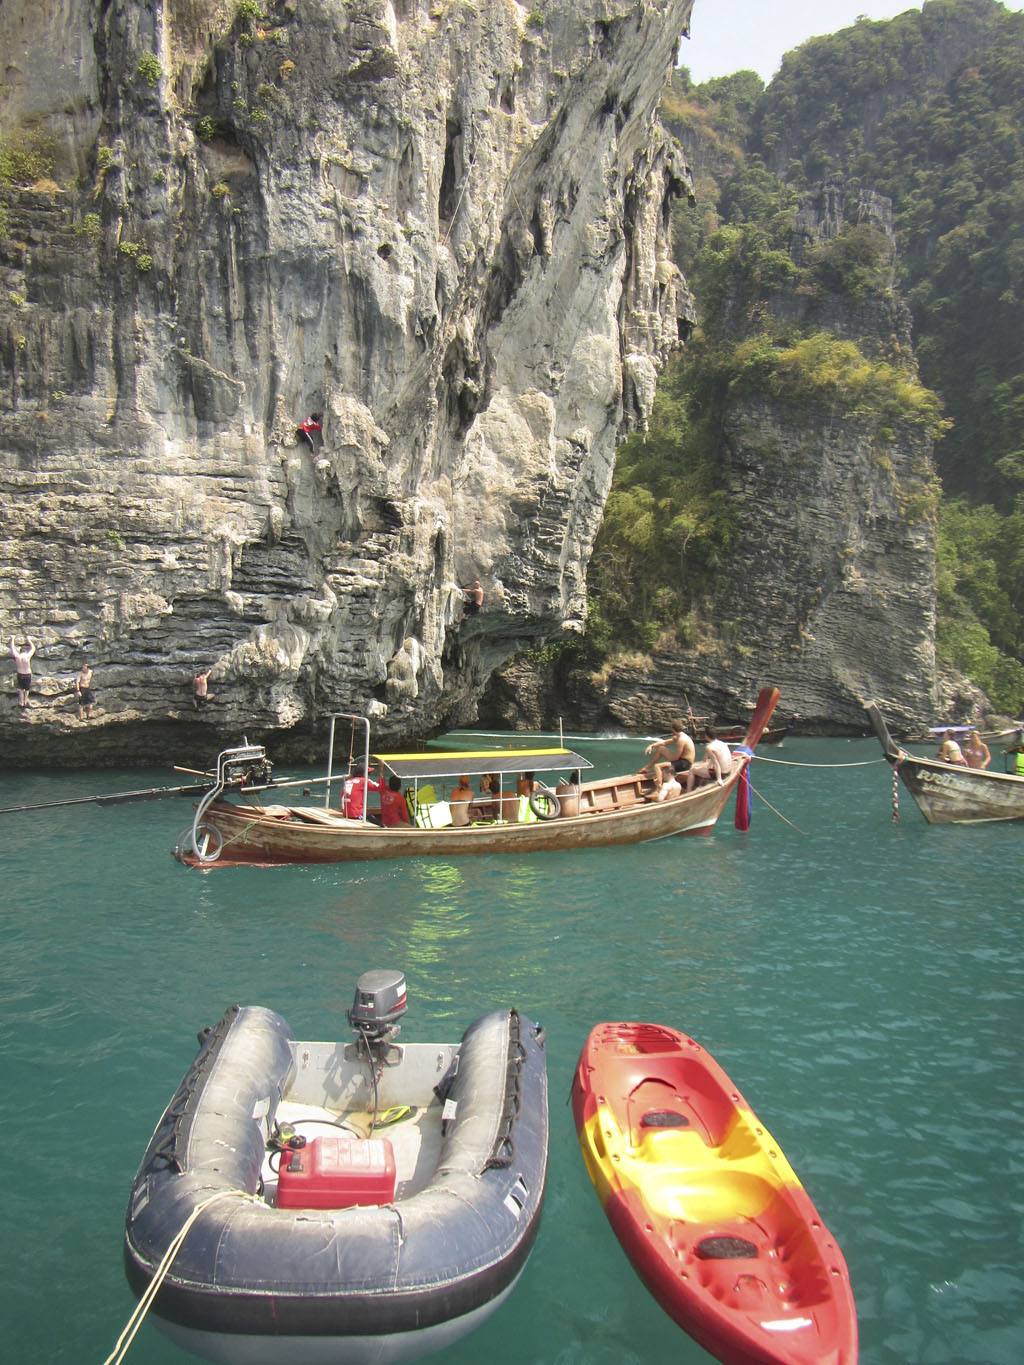 Deep-water solo rockclimbing, inflatable and kayak with nearby longtails